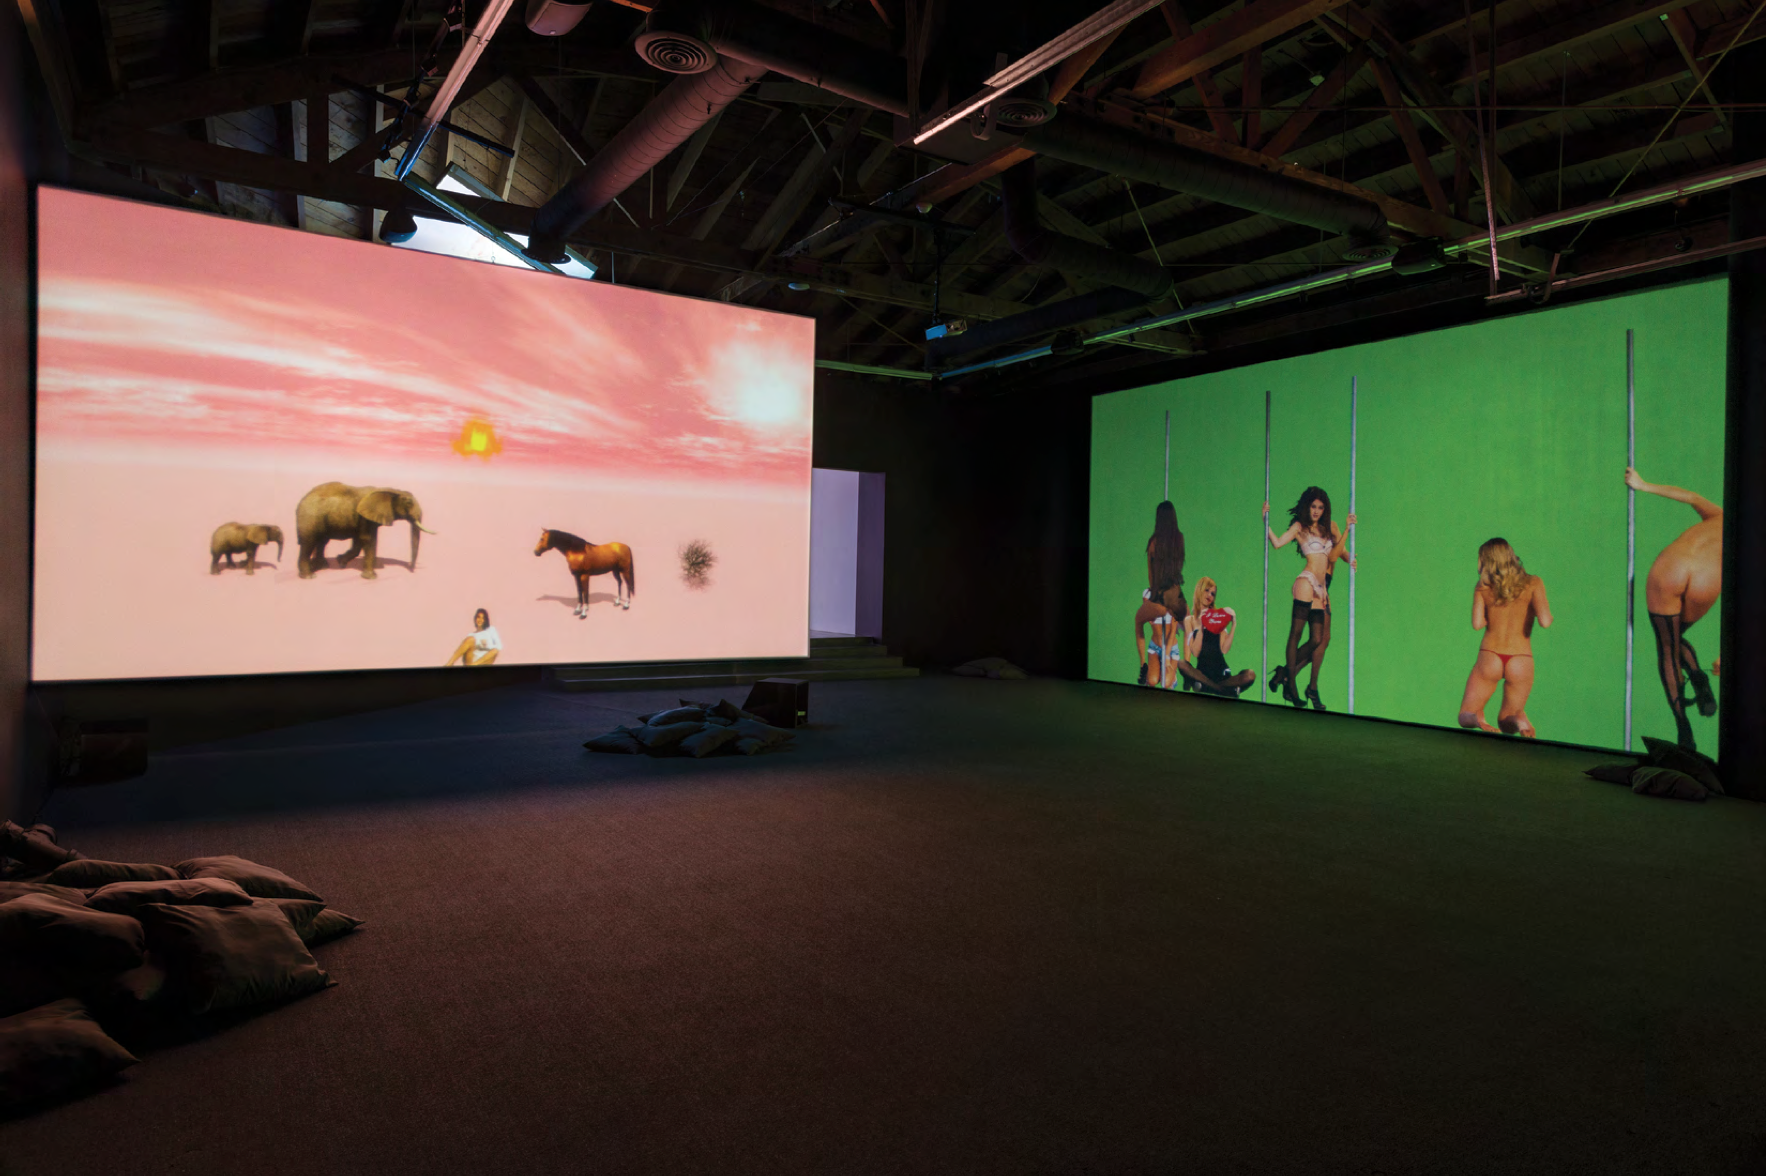 Installation view, NIKI, LUCY, LOLA, VIOLA, Petra Cortright at Depart Foundation, Los Angeles, 2015. Courtesy of the artist.